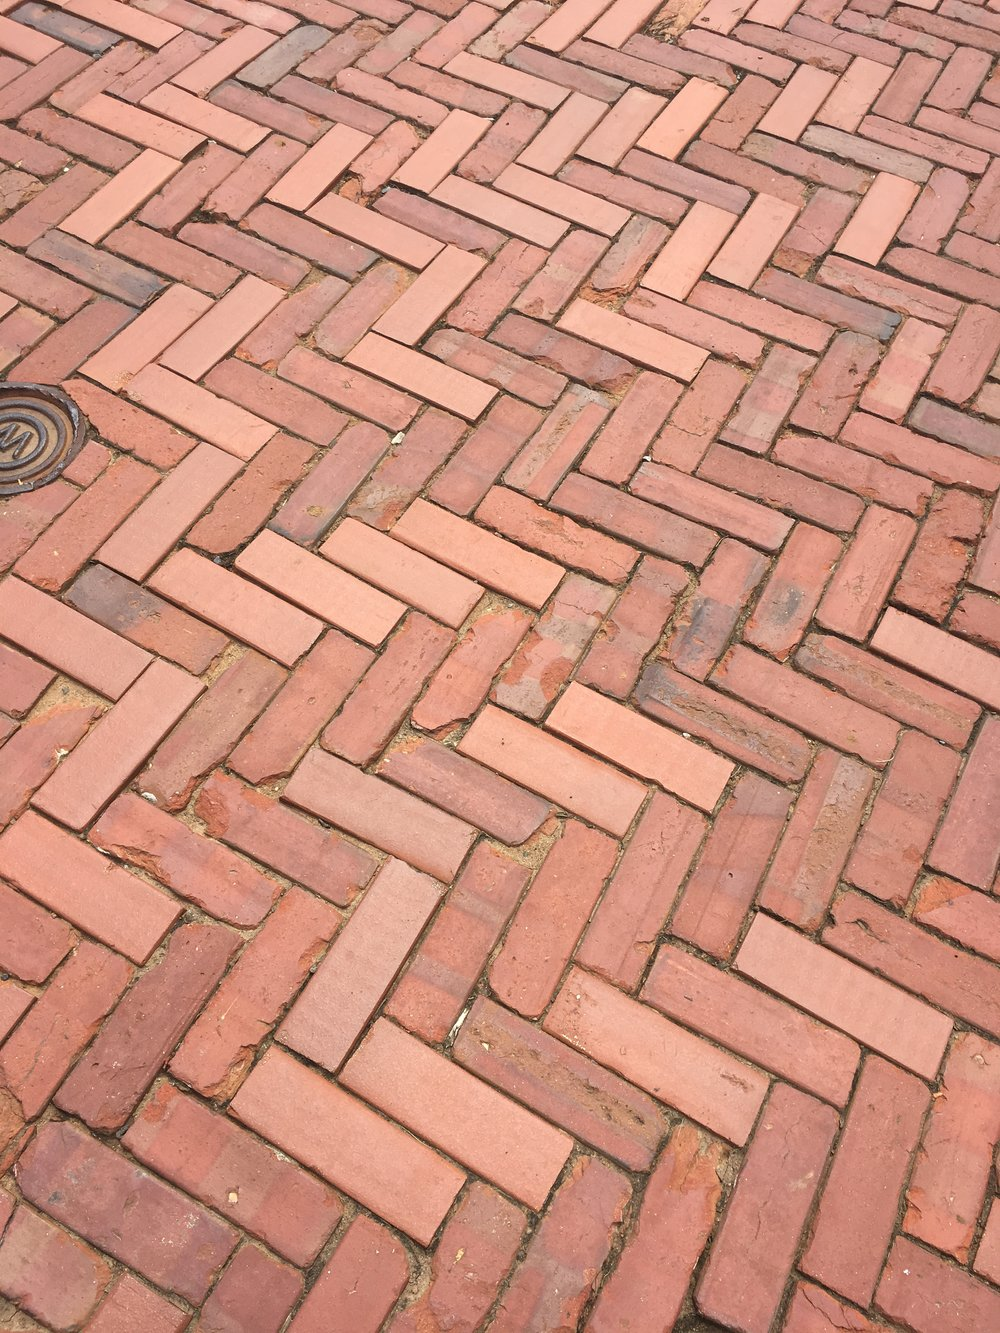 Beautiful Brick Walkway